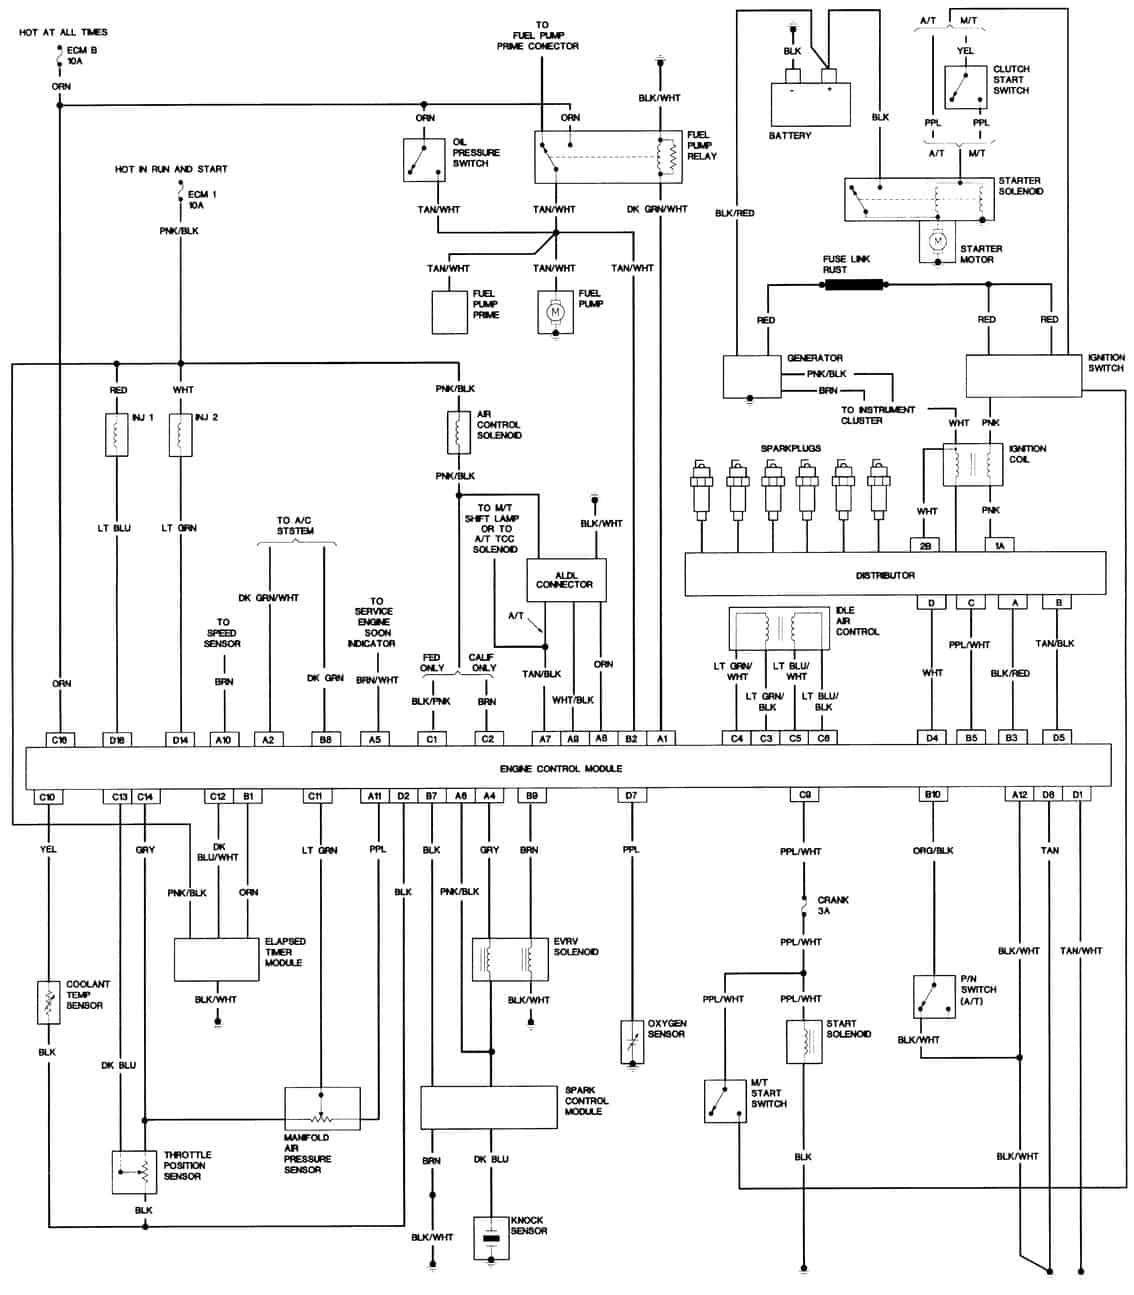 Wiring Diagram For 1986 Cutlass Worksheet And Oldsmobile 442 1987 Supreme Schematics Diagrams U2022 Rh Ssl Forum Com 1978 Specs